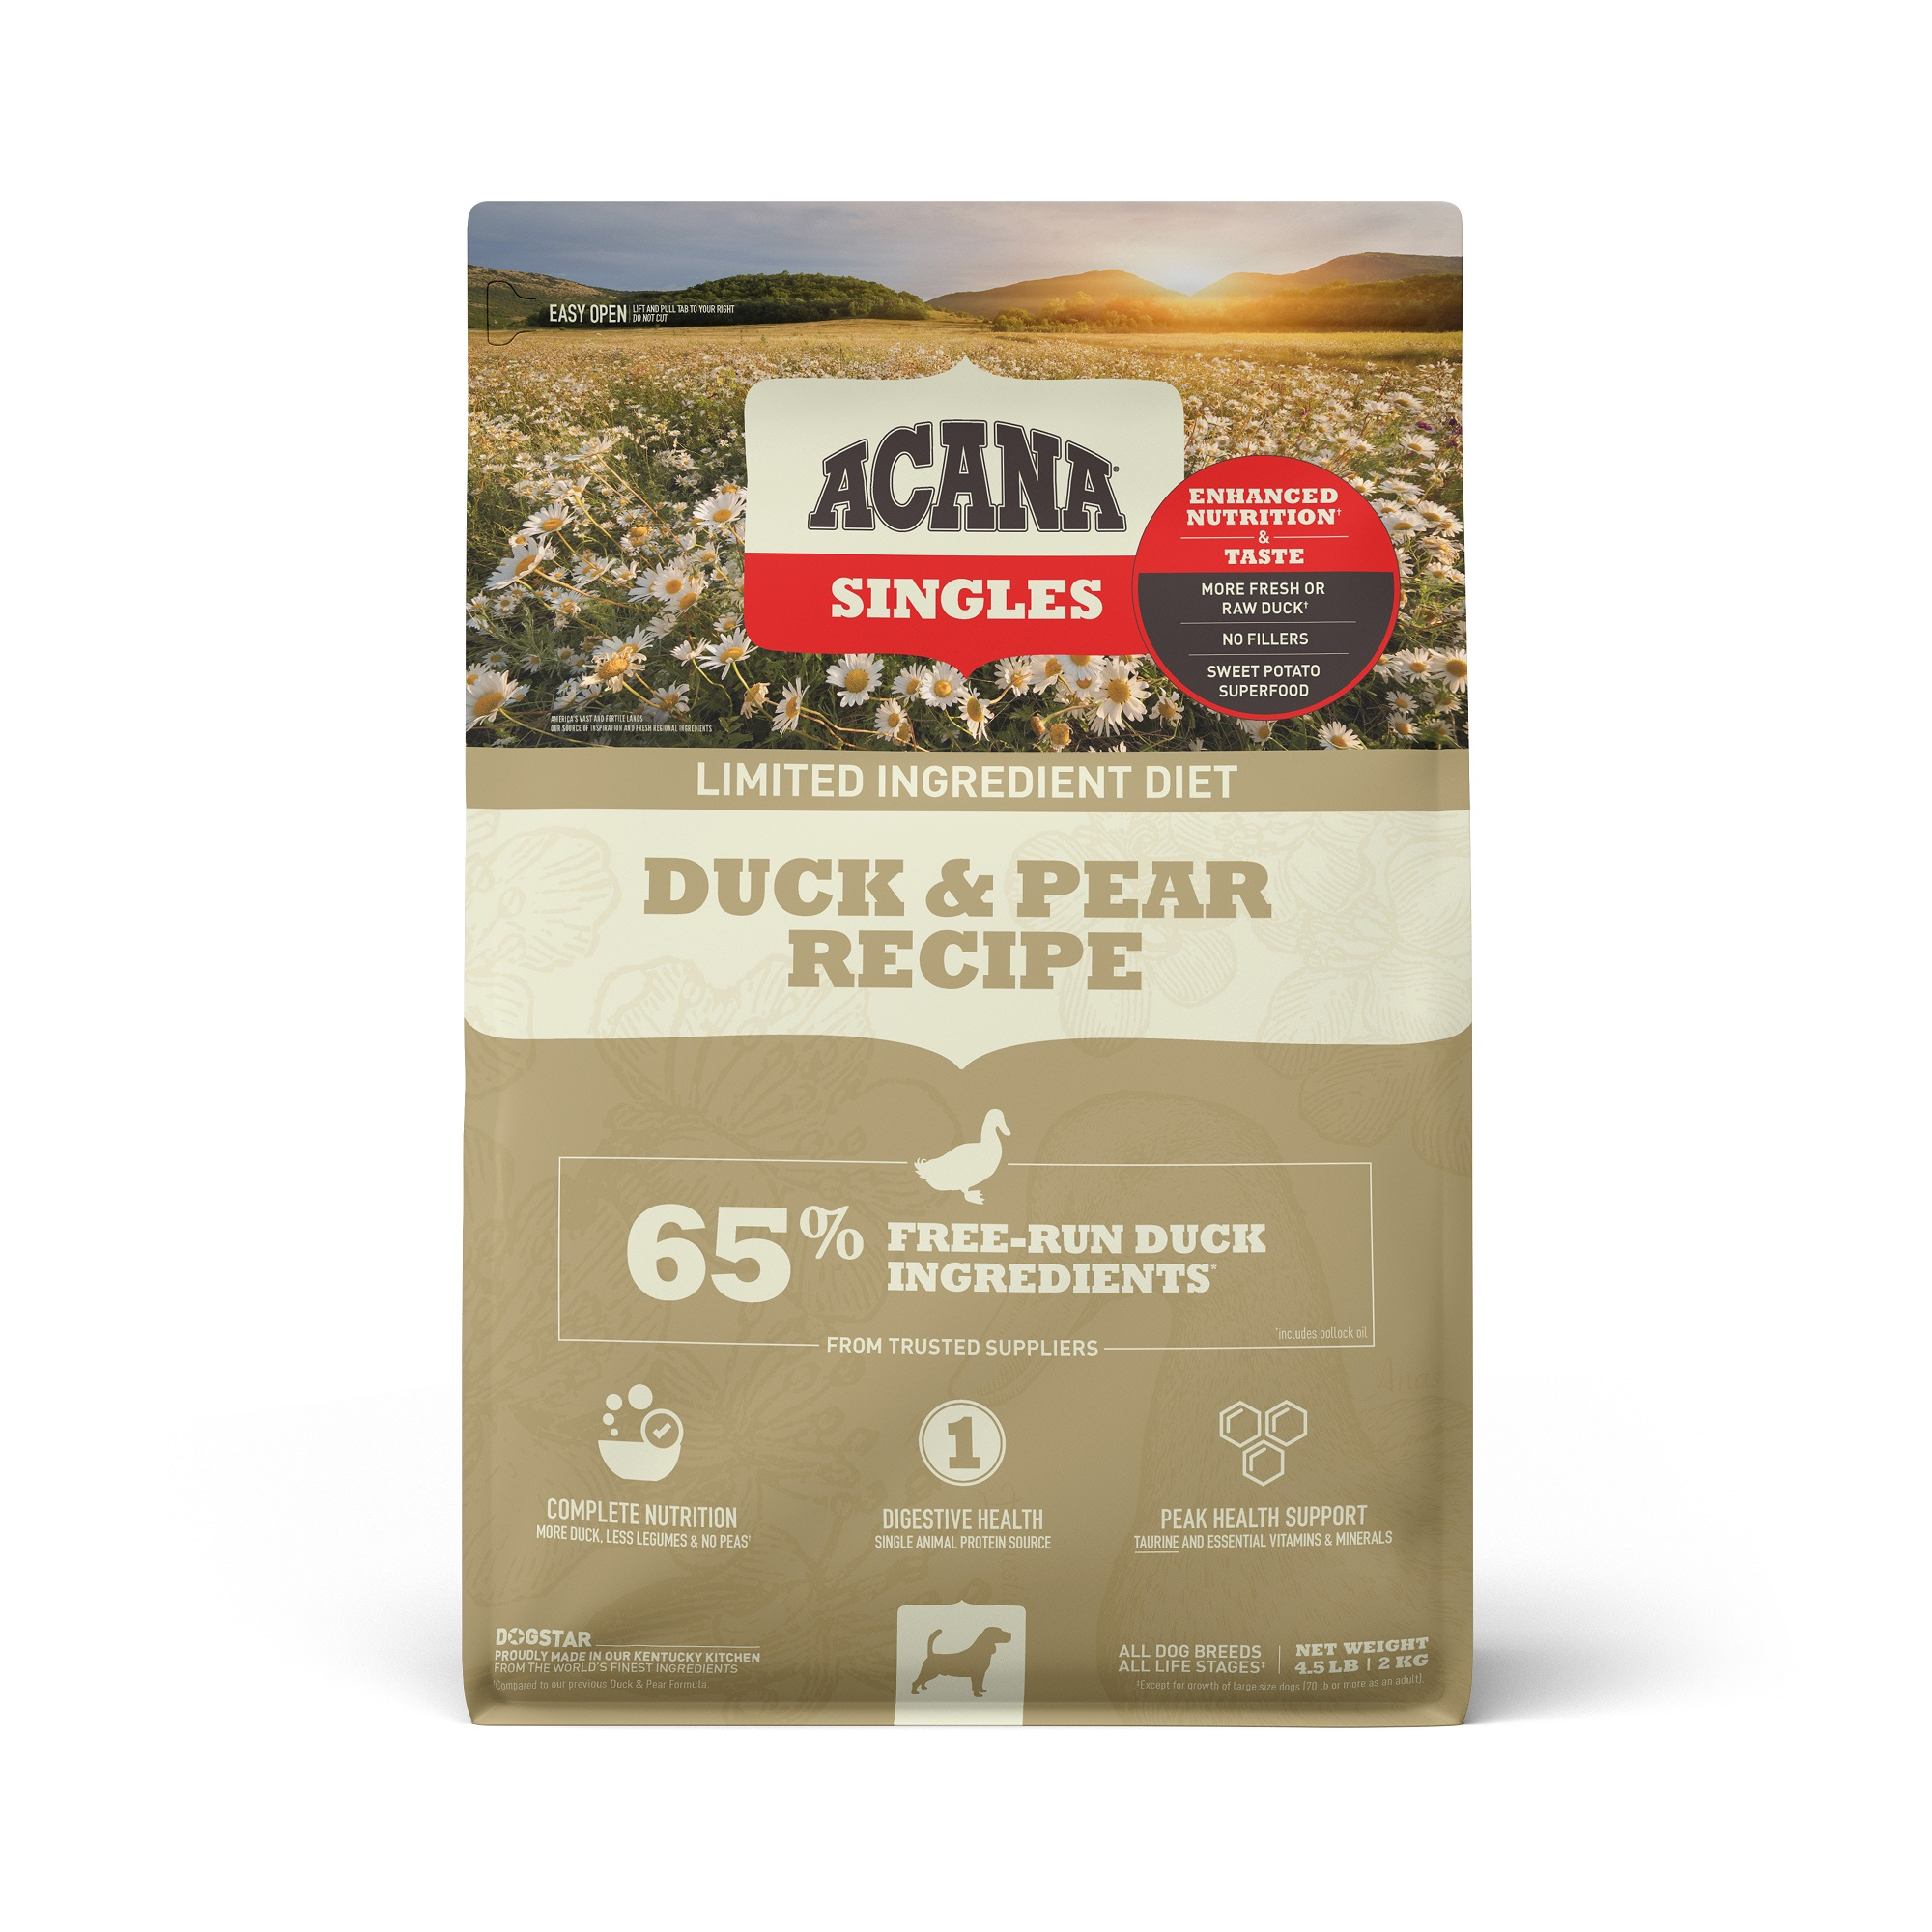 ACANA Singles Limited Ingredient Duck & Pear Grain-Free Dry Dog Food, 4.5-lb bag